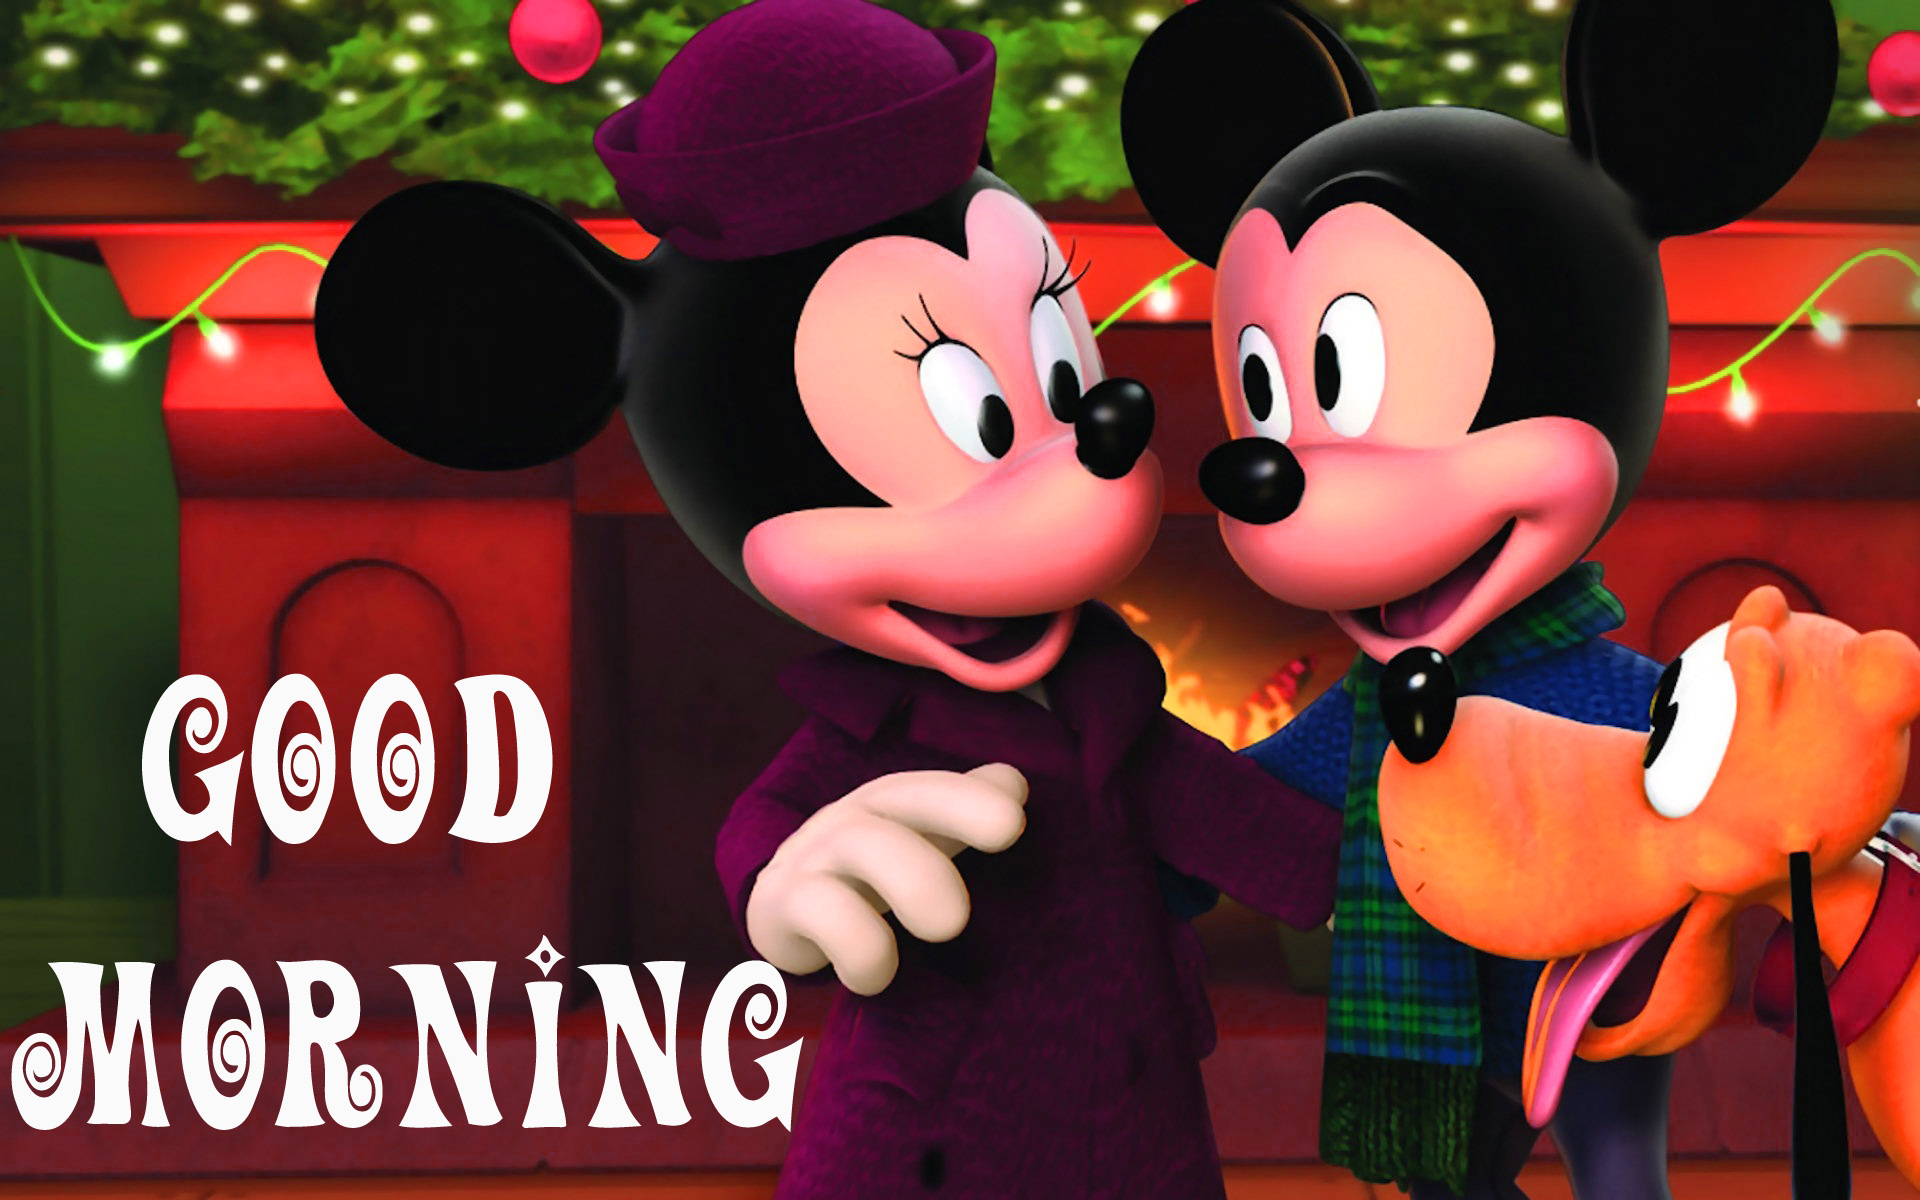 Good morning  wishes with mickey Images Wallpaper Pictures for Whatsapp